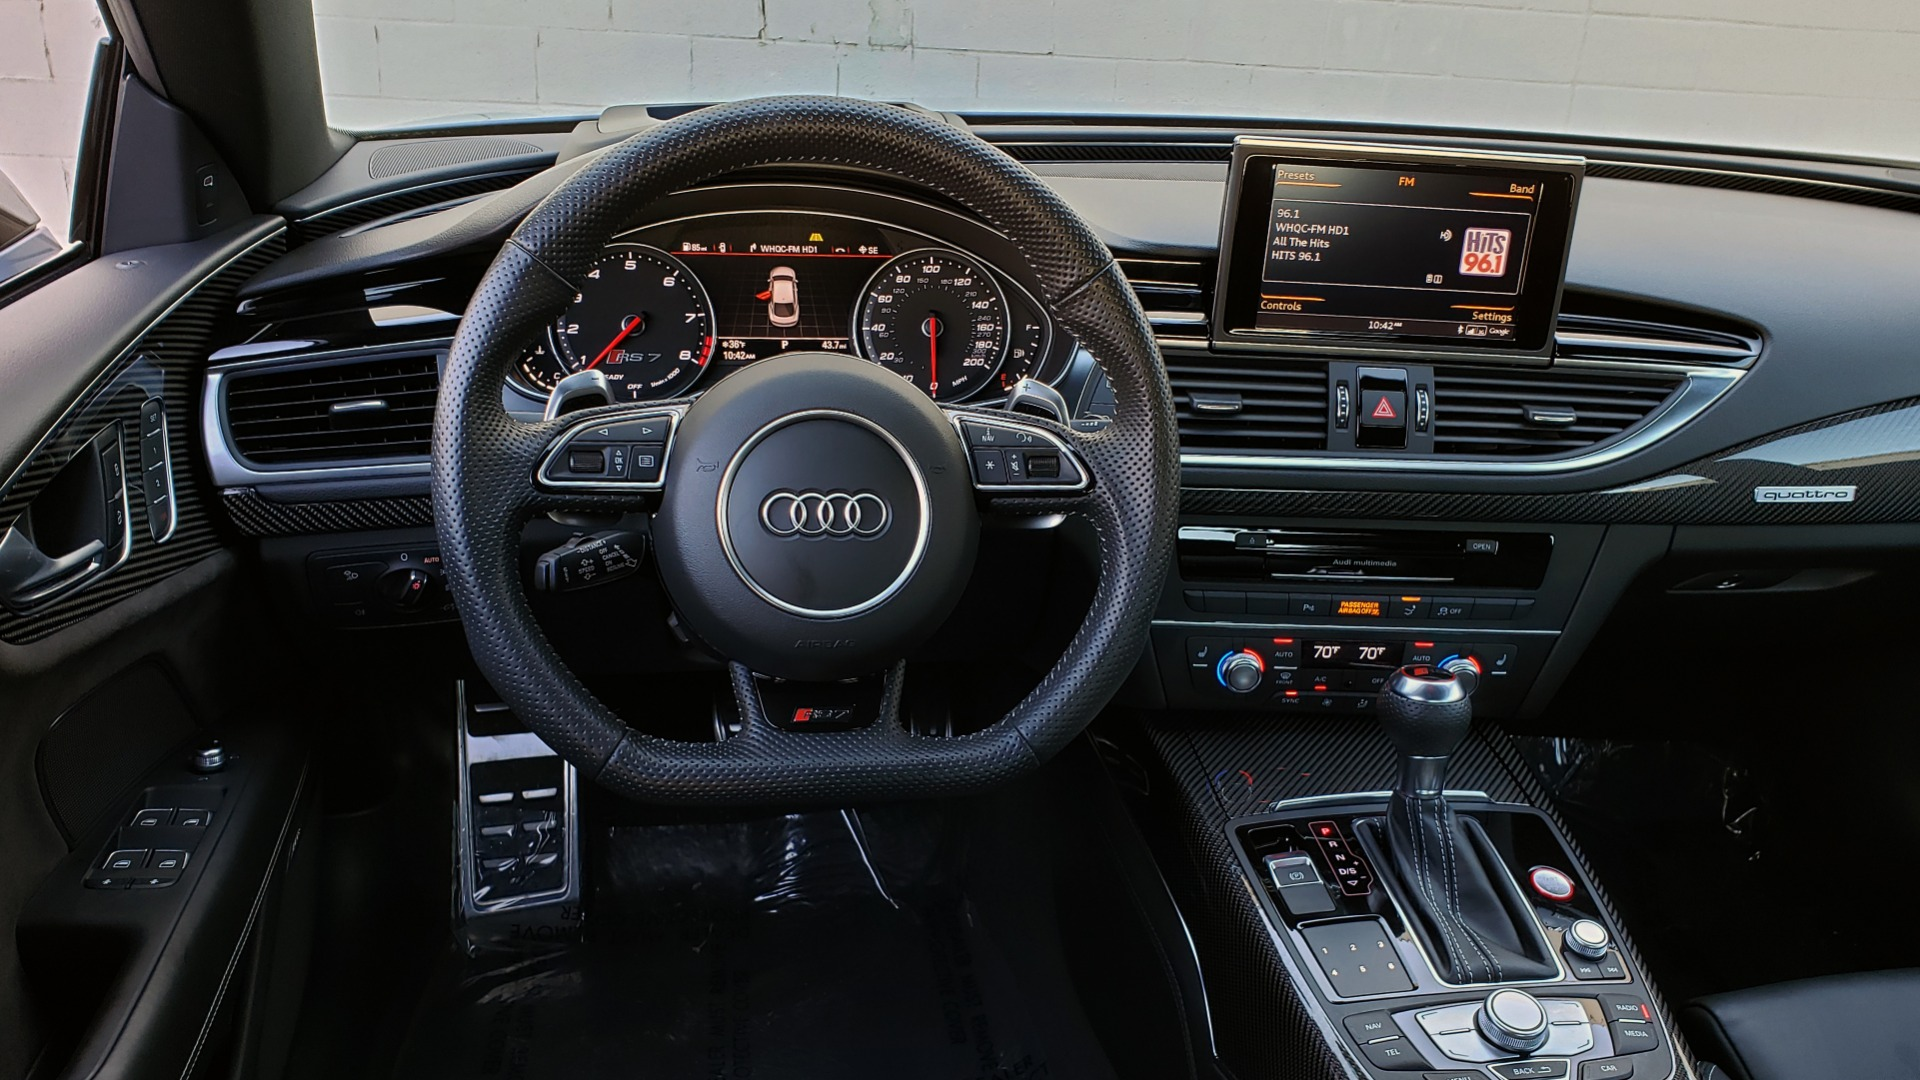 Used 2018 Audi RS 7 4.0T TIPTRONIC / CARBON OPTIC / DRVR ASST / NAV / REARVIEW / 750HP+ for sale Sold at Formula Imports in Charlotte NC 28227 43